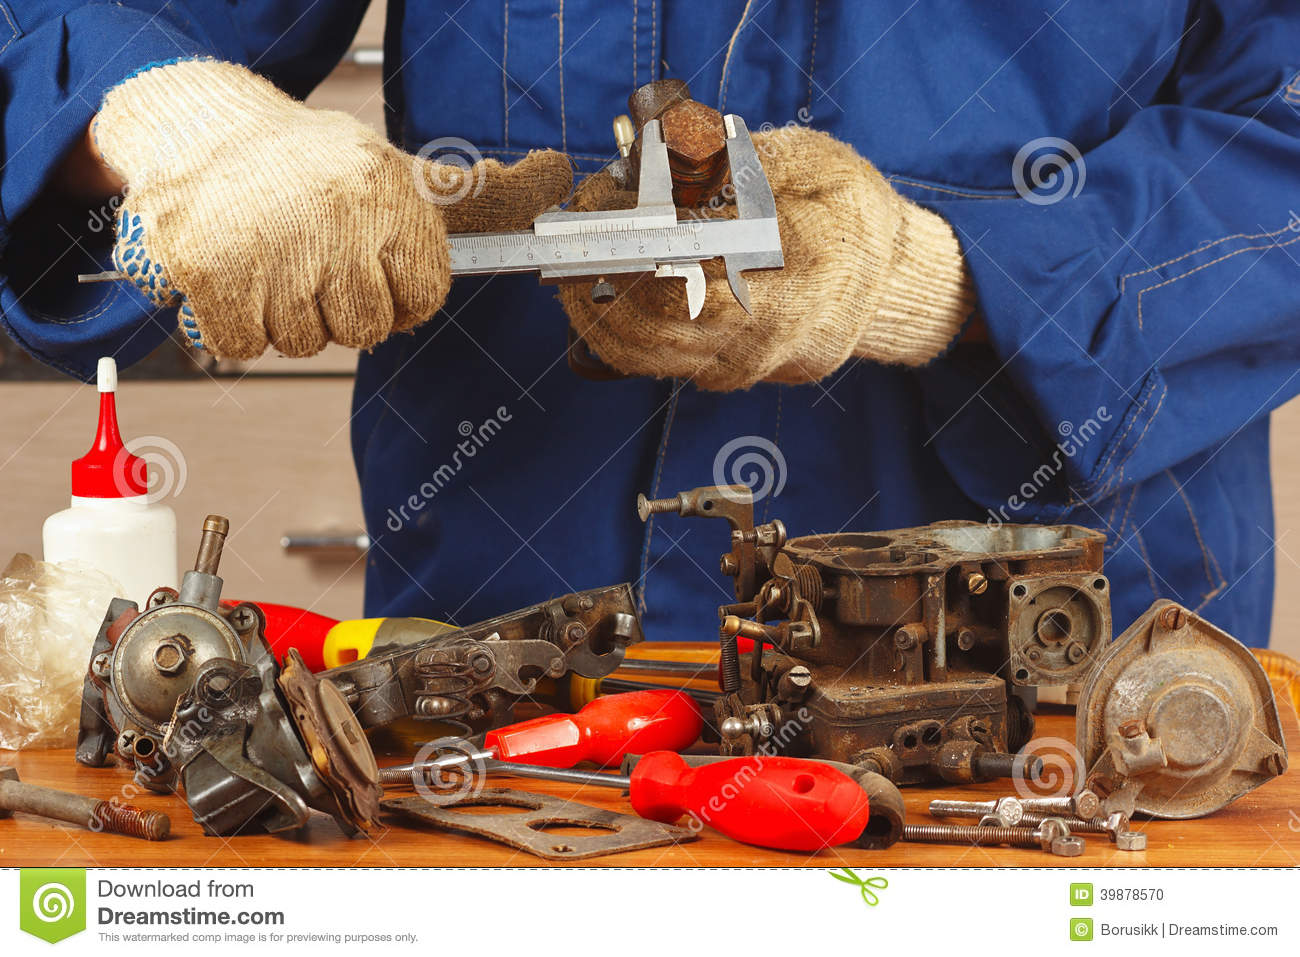 free labor guide for automotive repair